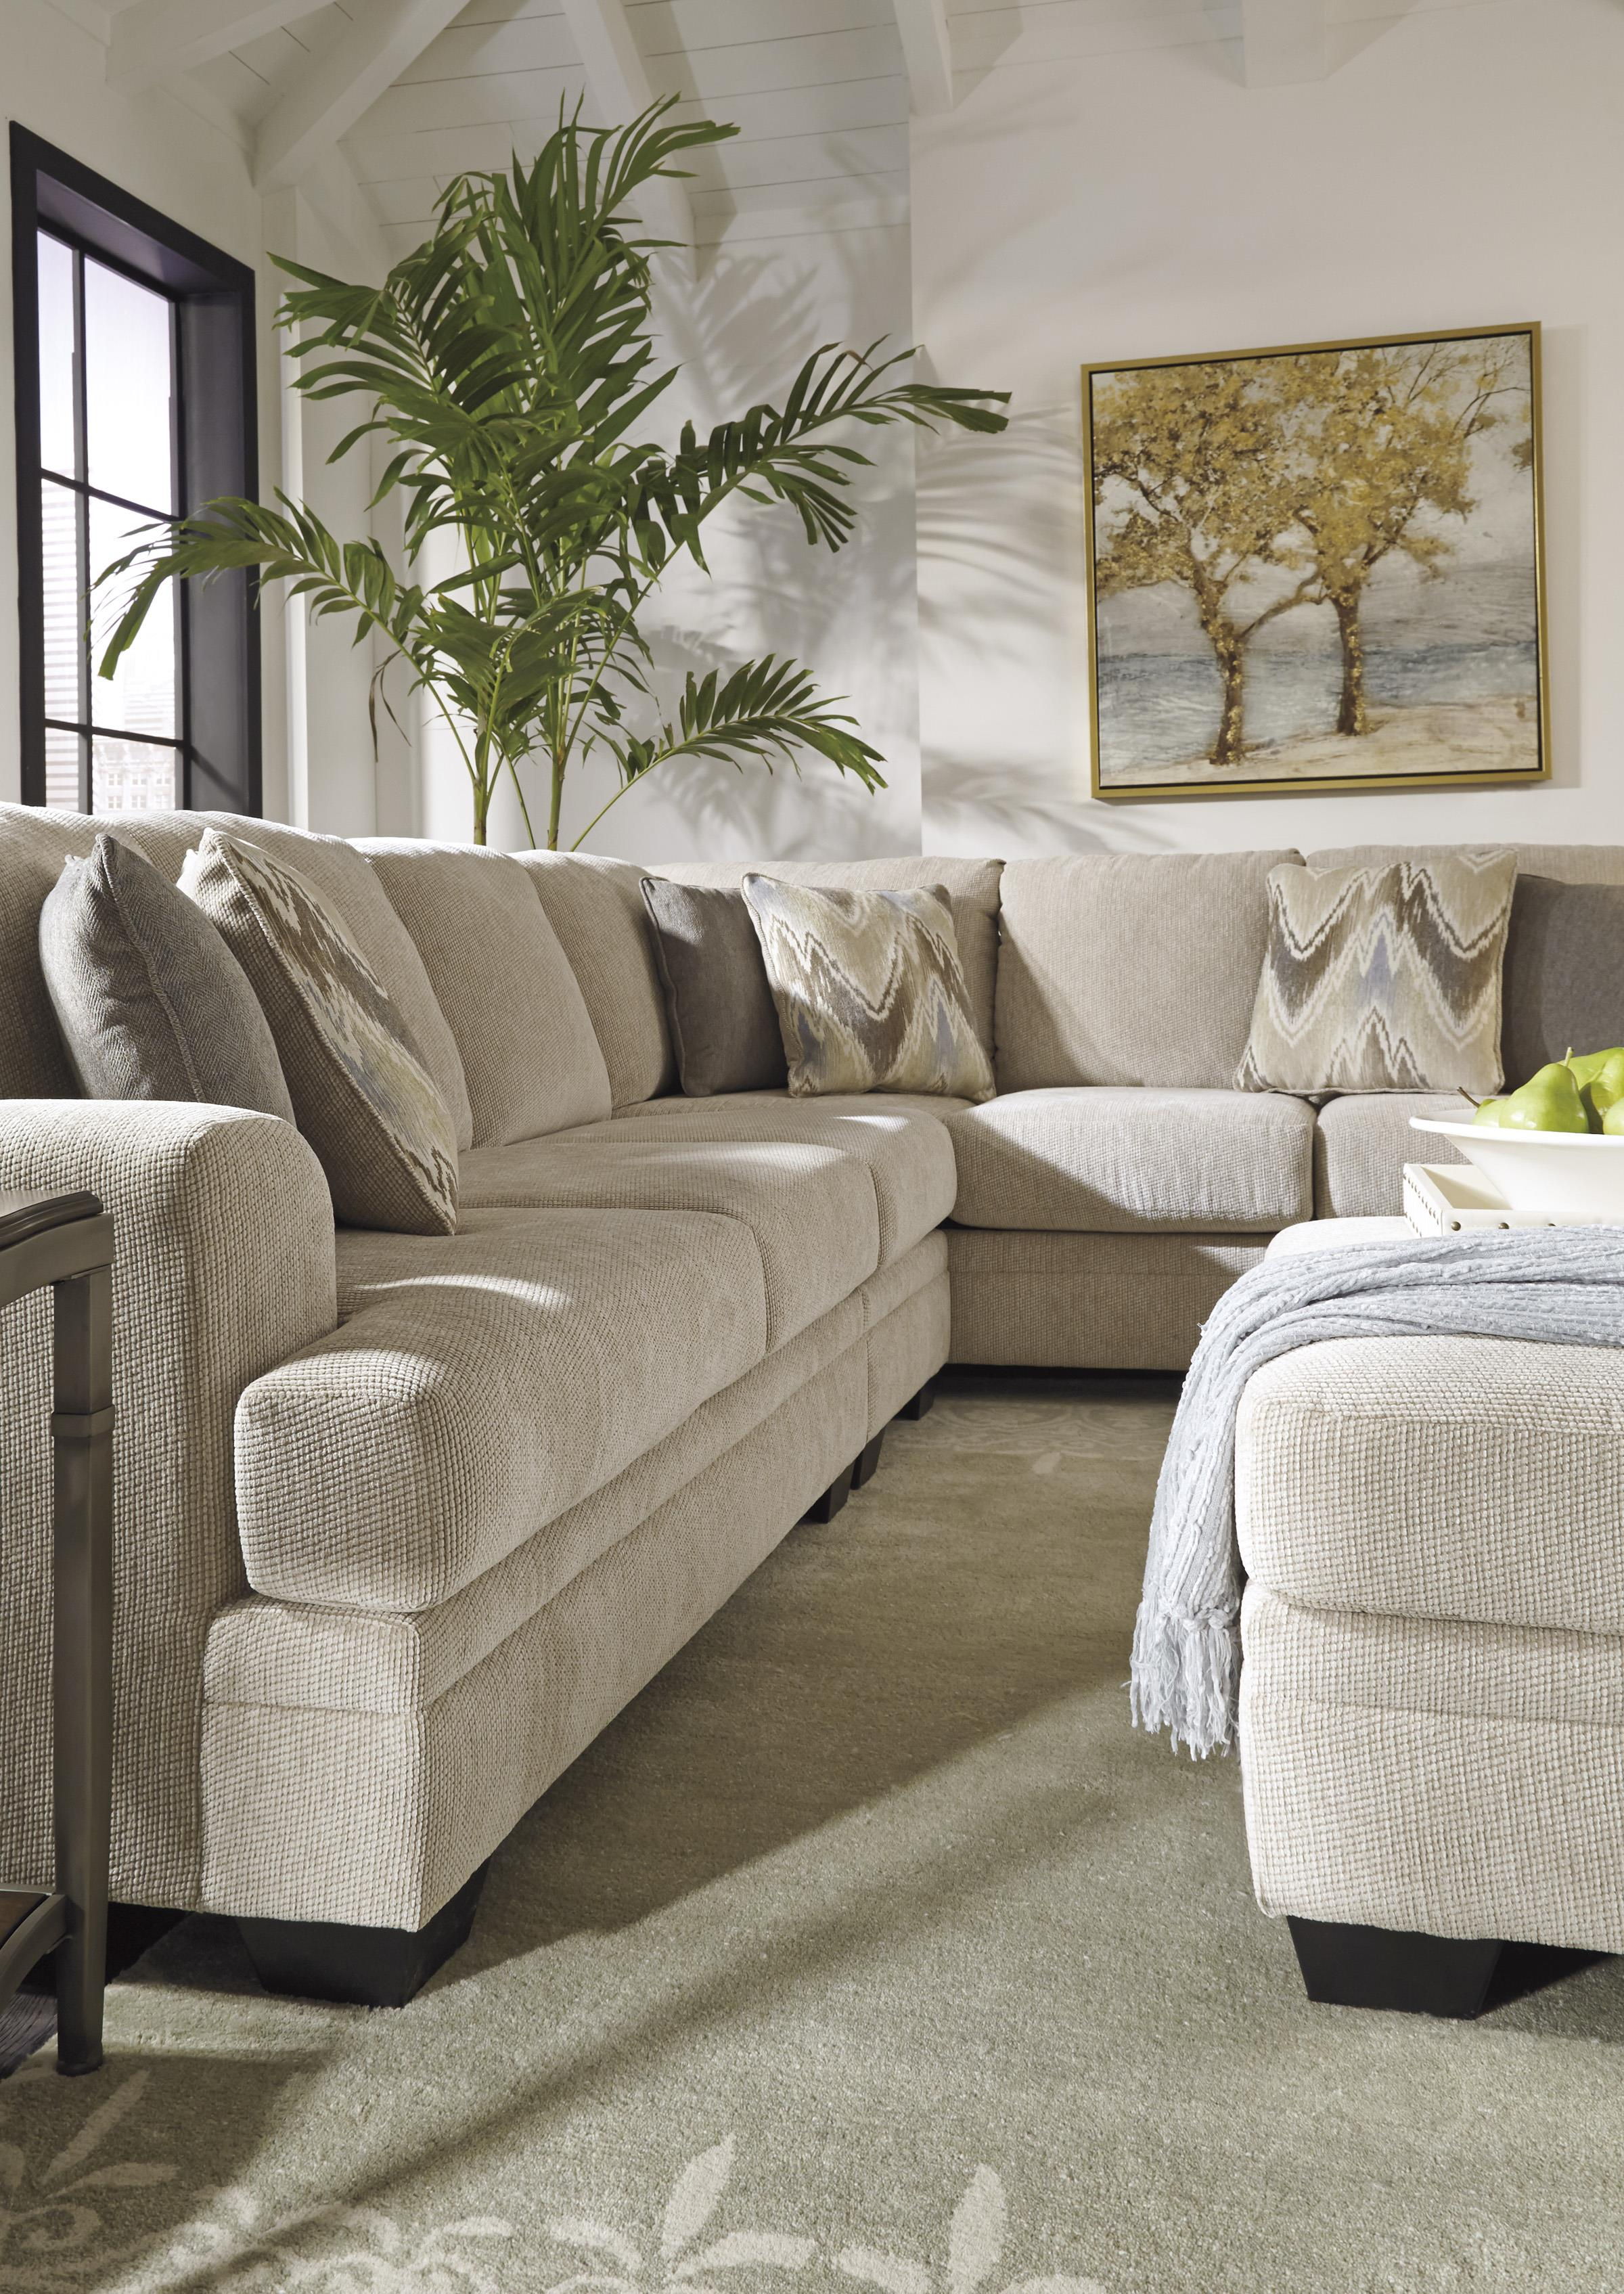 Benchcraft Ameer Contemporary 3 Piece Sectional Virginia